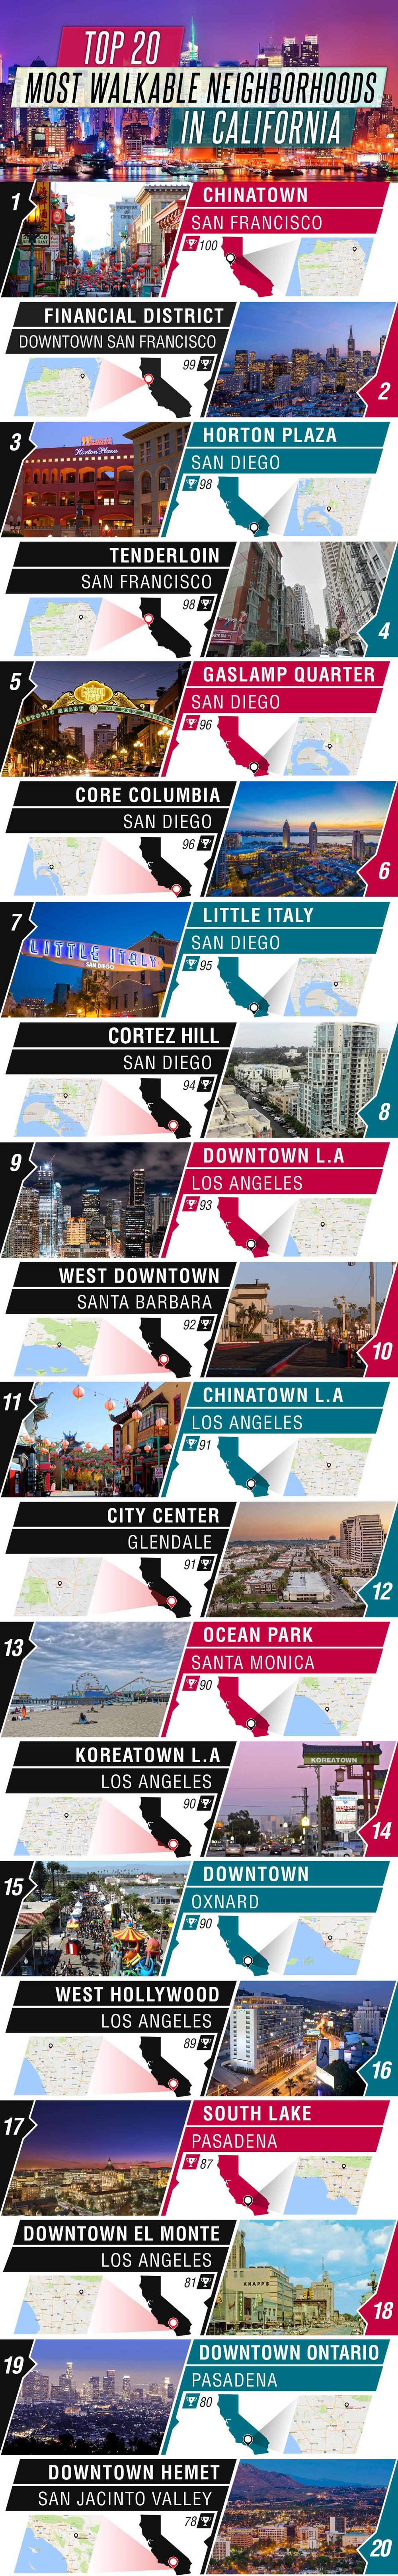 infographic-top-20-most-walkable-neighborhoods-in-california-content (1).jpg